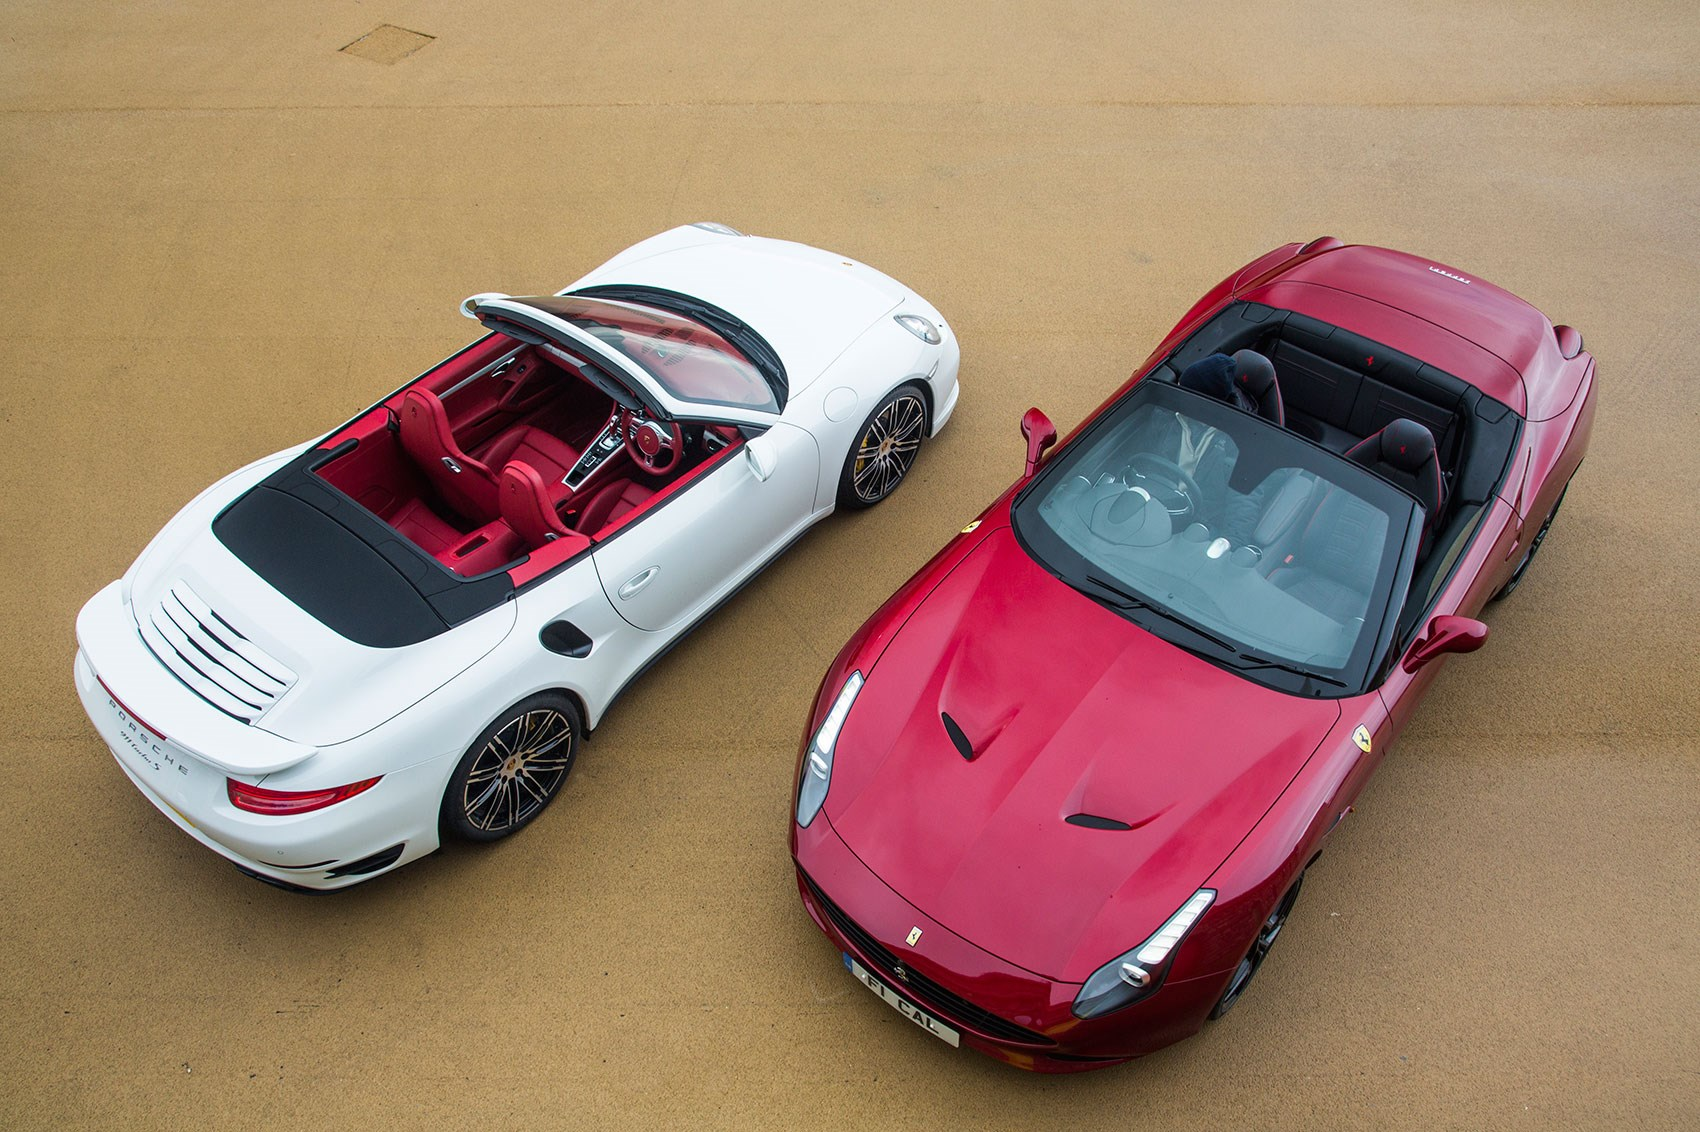 porsche 911 turbo s cabrio vs ferrari california t twin test review rh carmagazine co uk  ferrari california fuse box